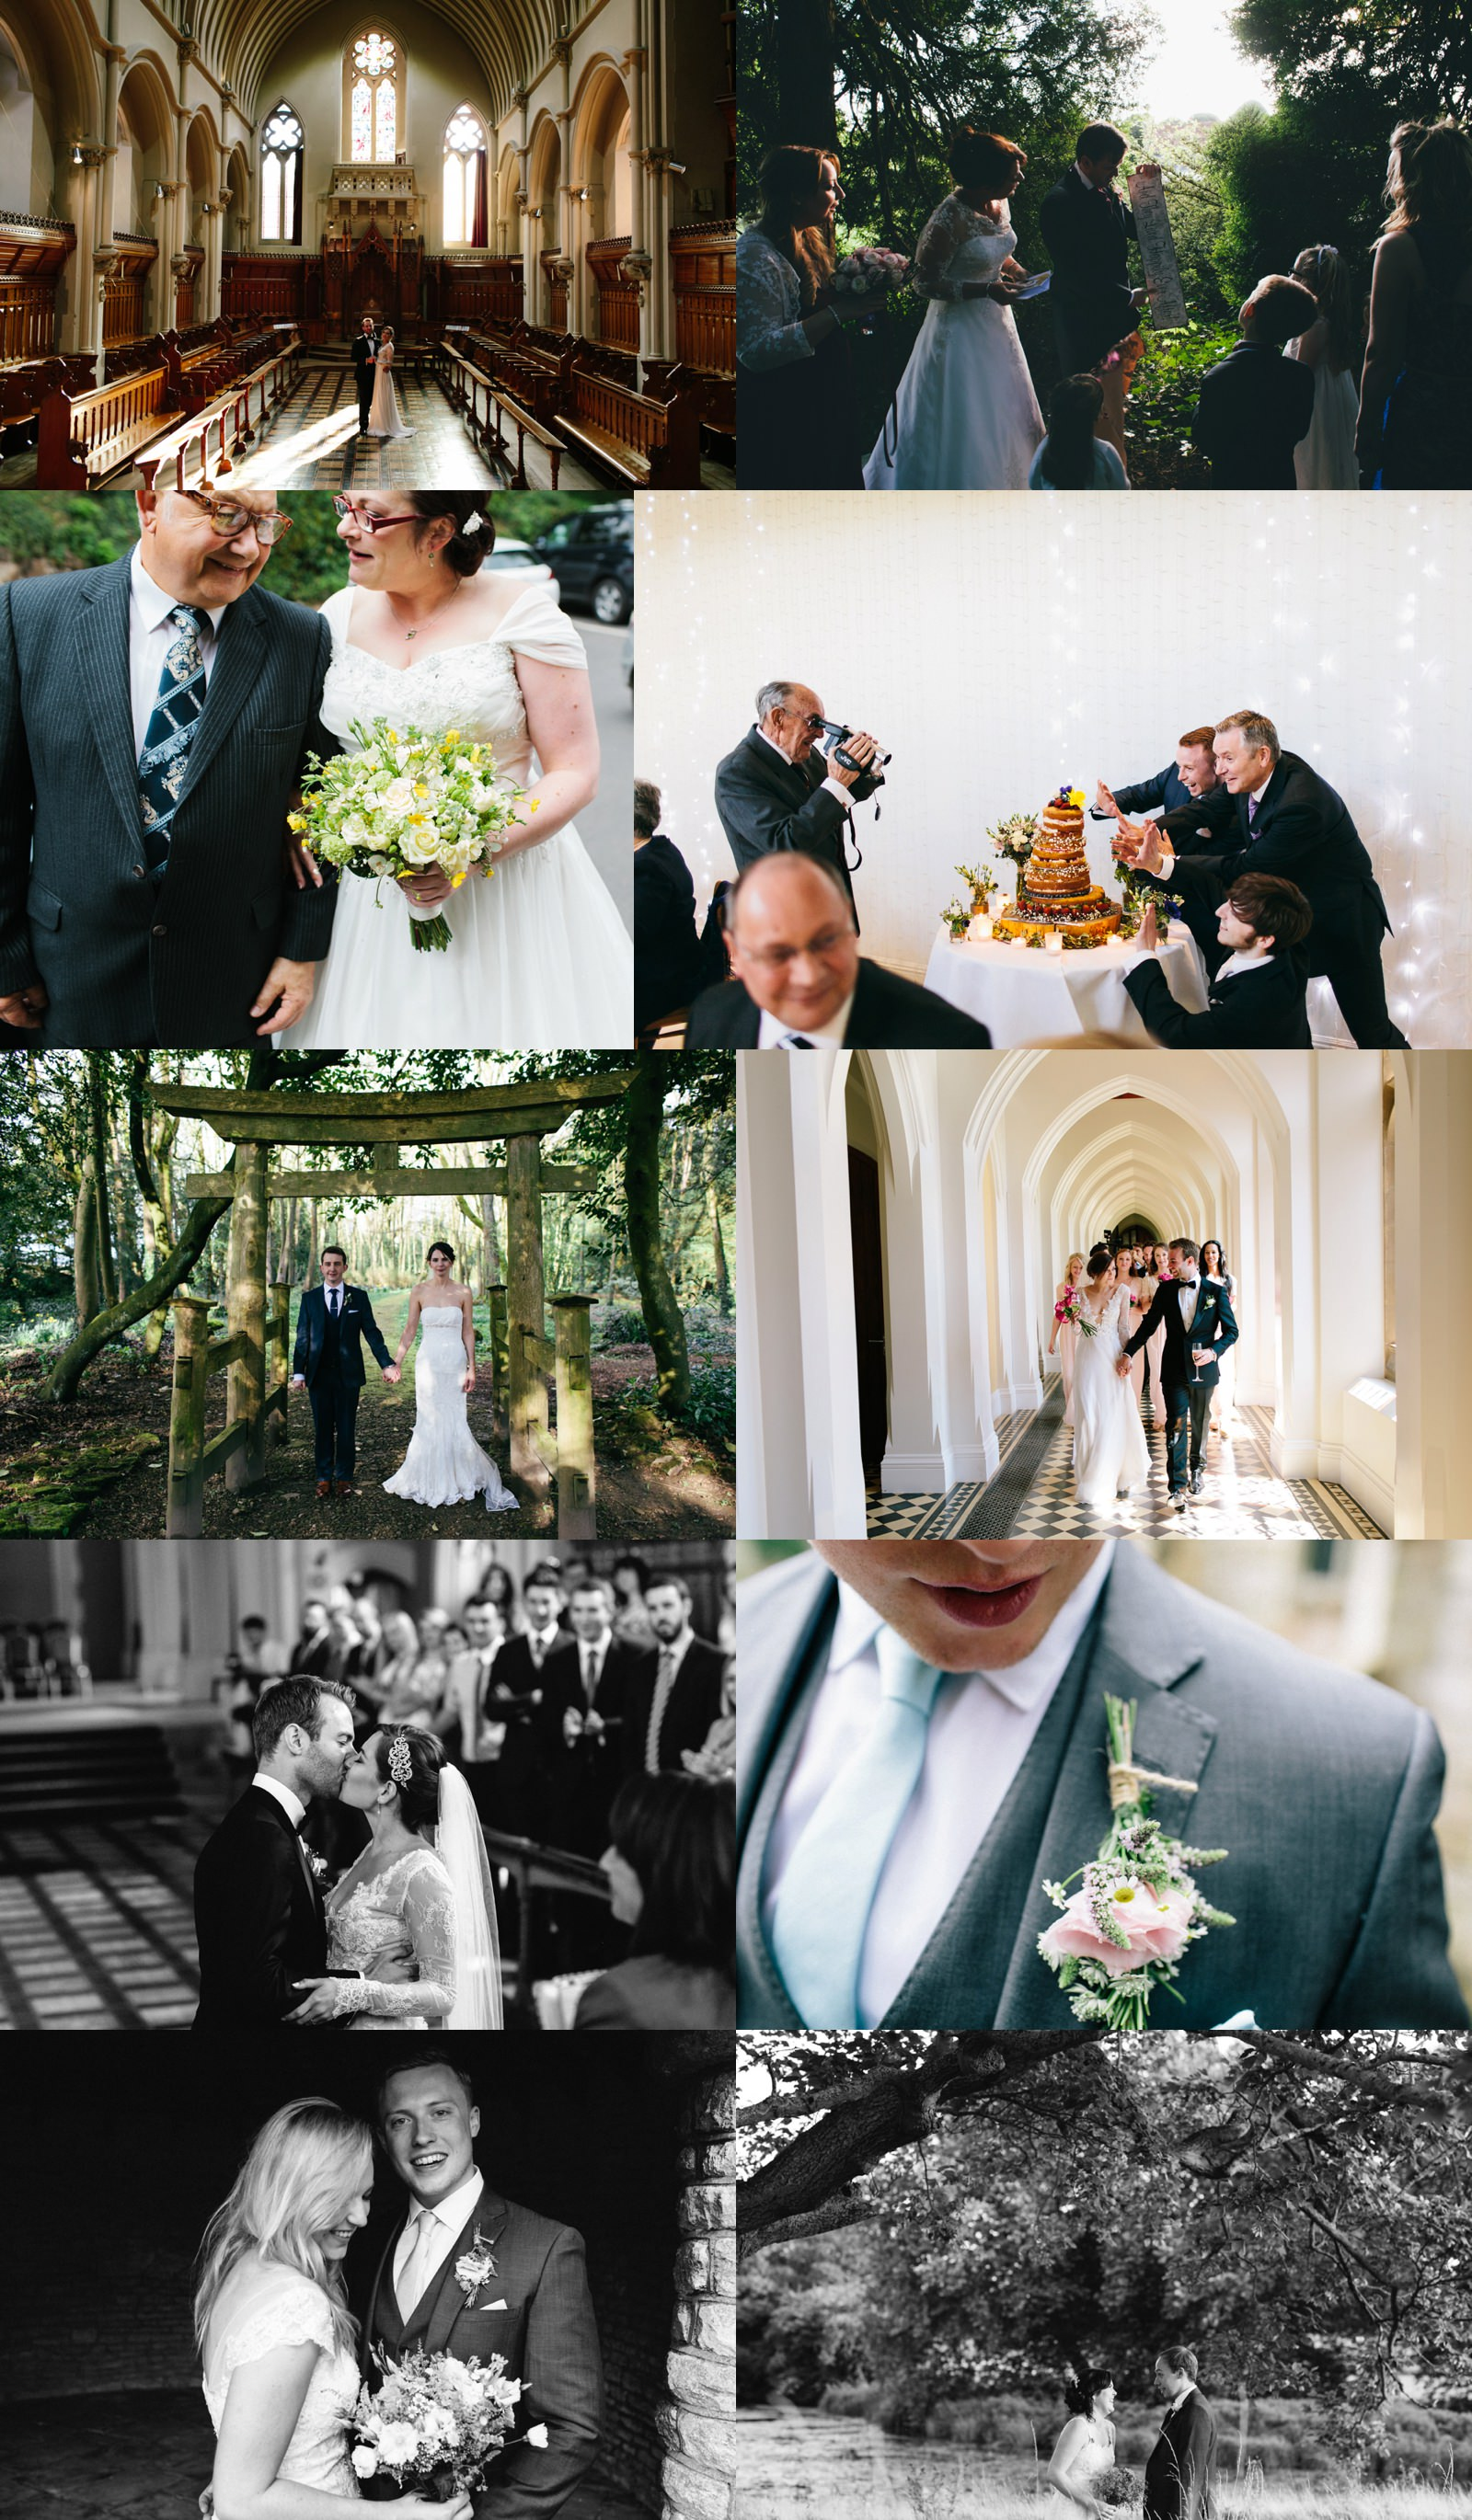 UK-WEDDING-PHOTOGRAPHER-CANDID-ORGANIC